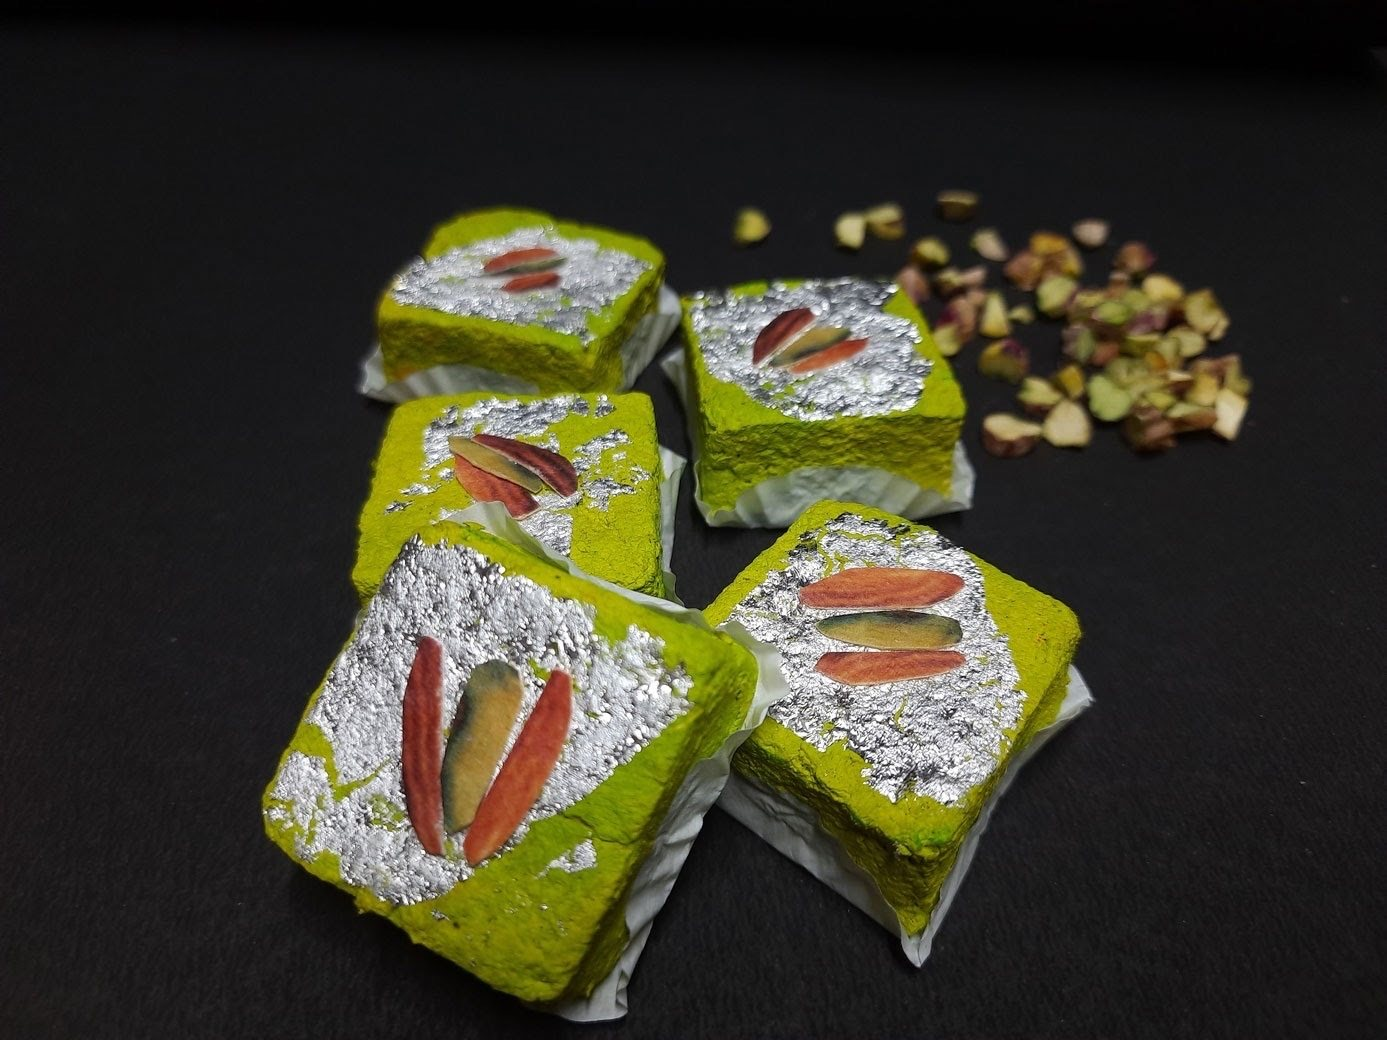 seed crackers and seed sweets